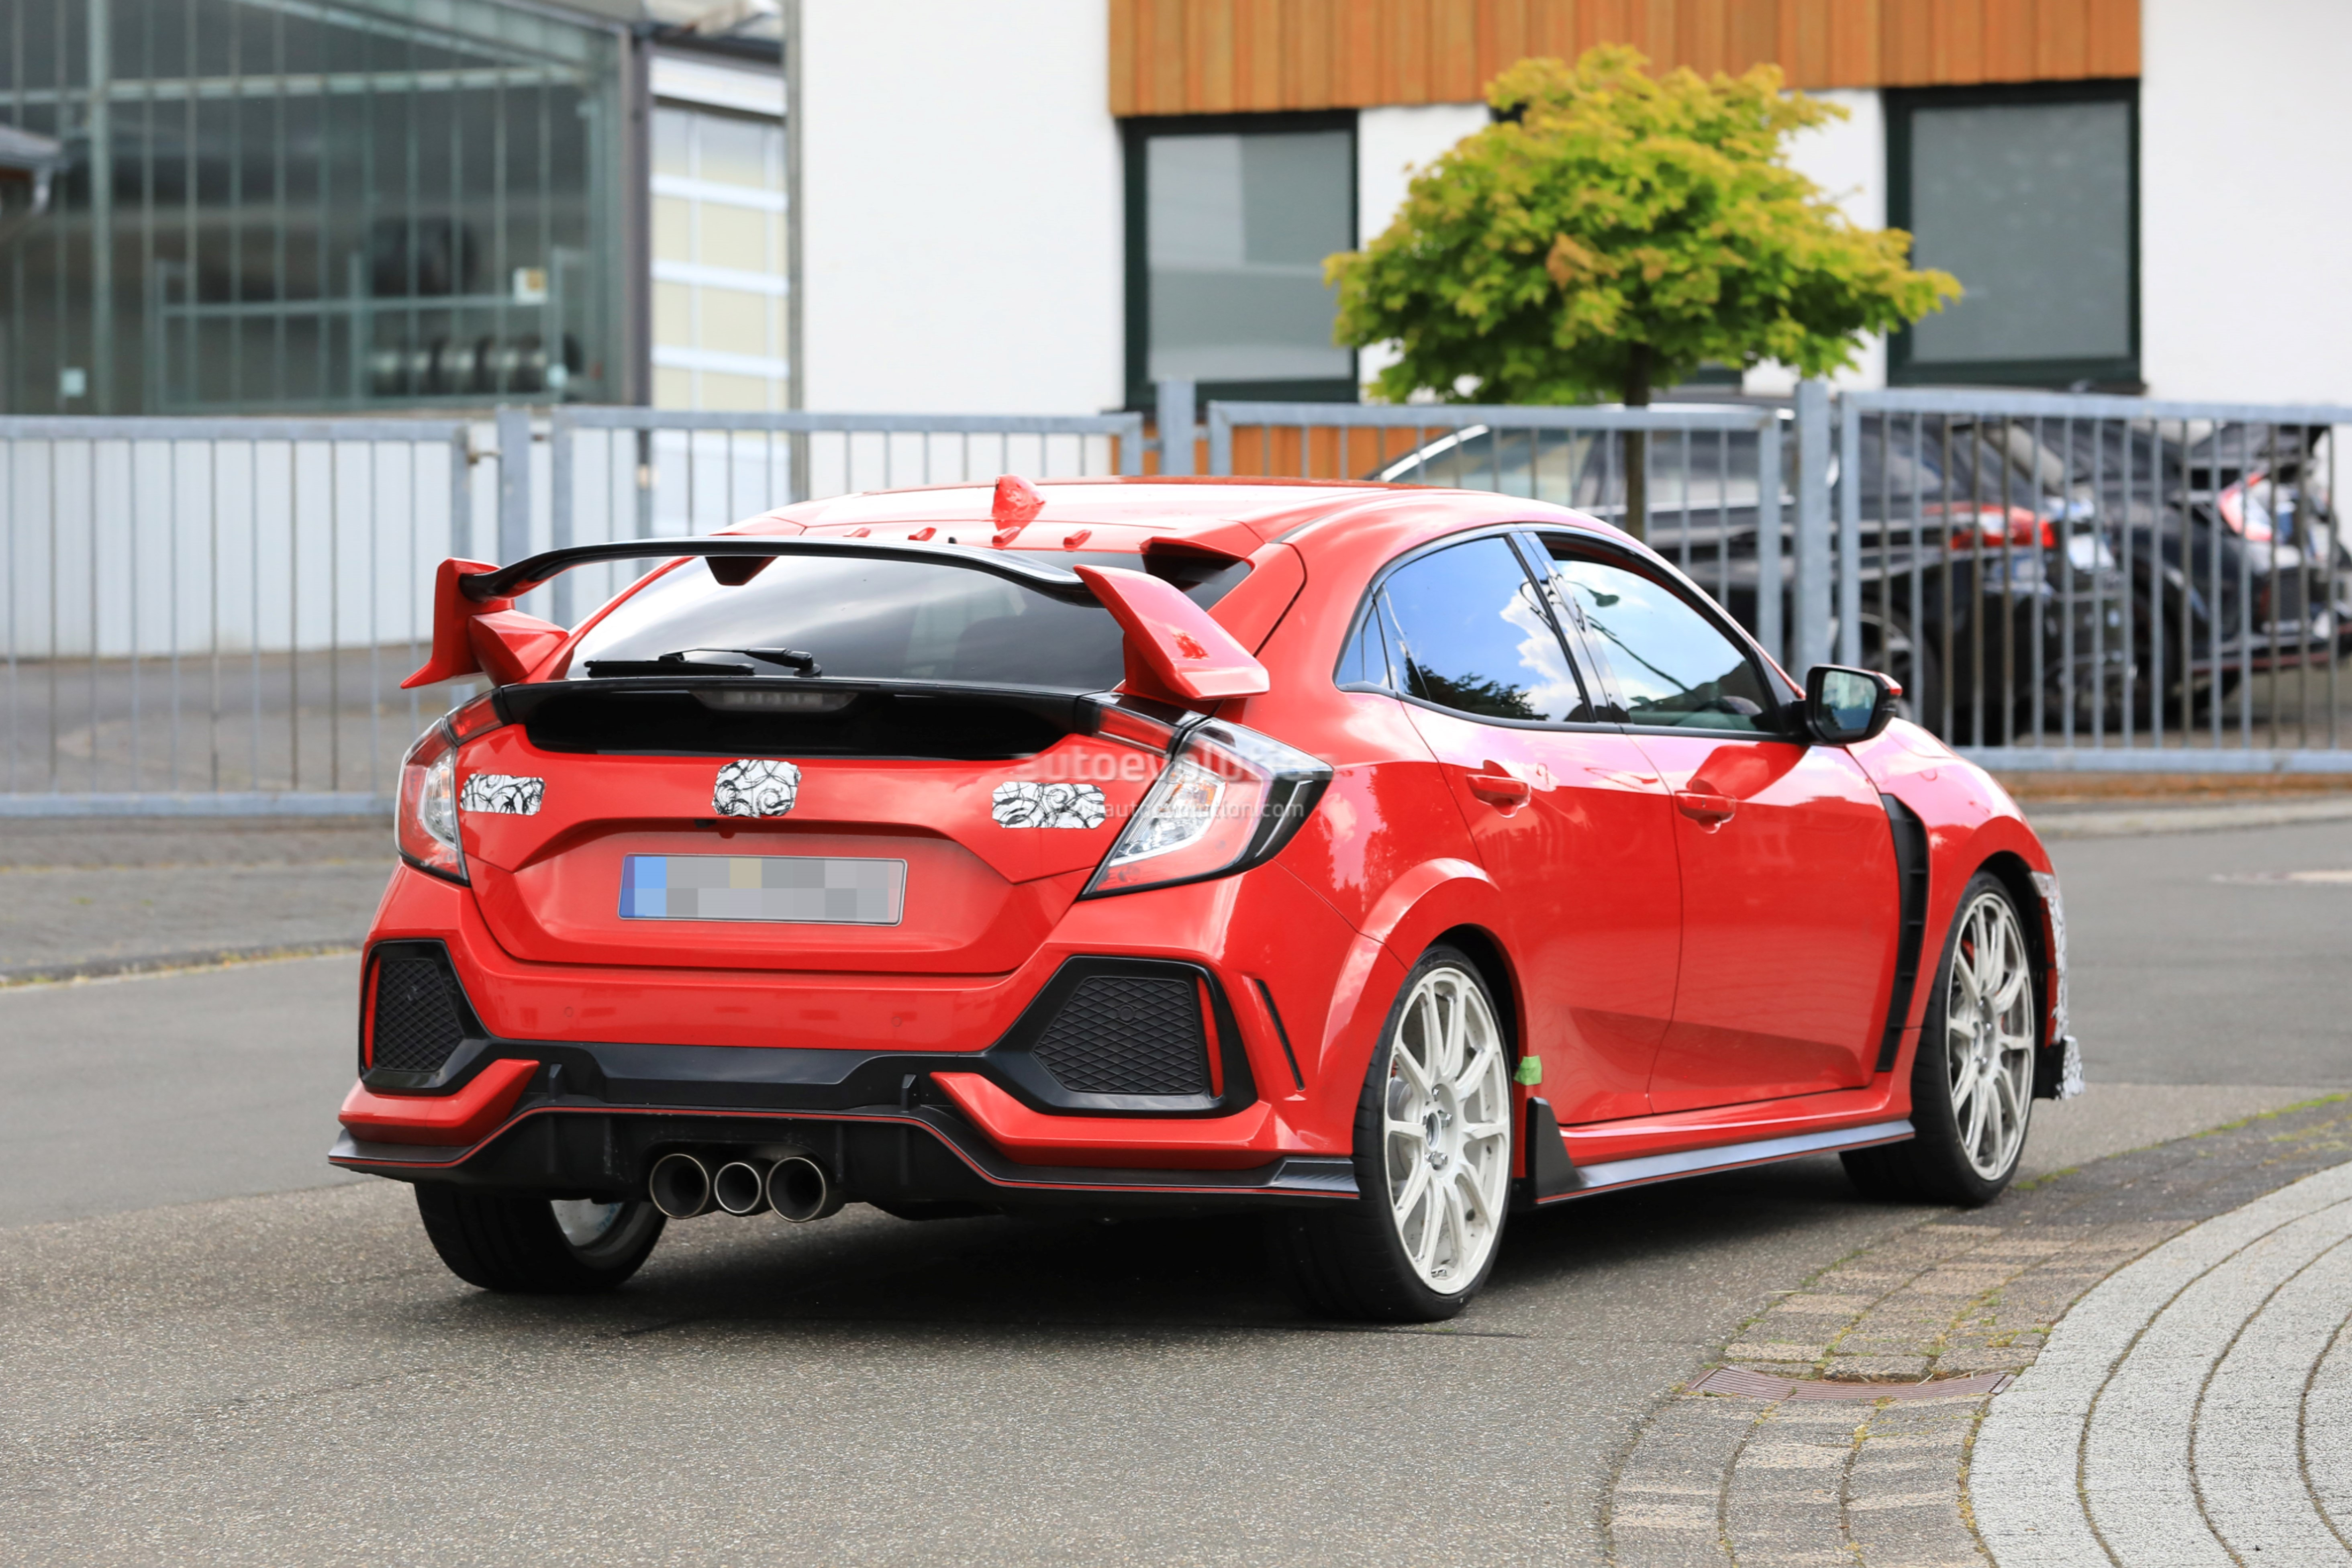 2019 Honda Civic Type R Spied in Red, Differs From White-painted Prototype - autoevolution